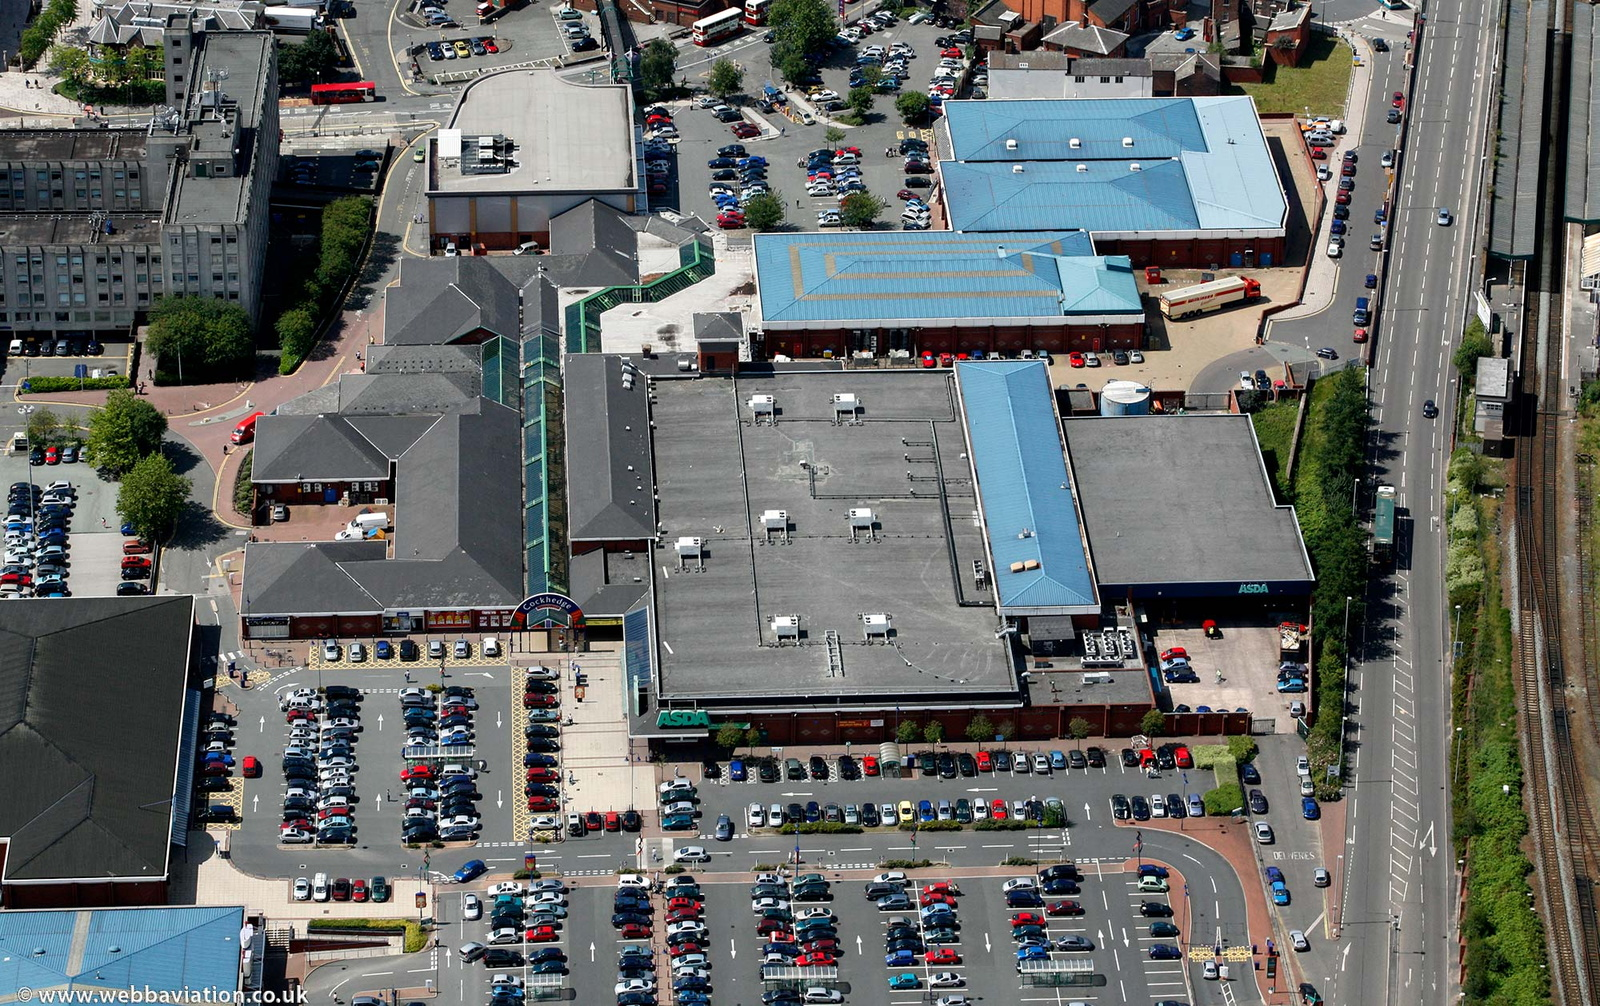 Asda Warrington Superstore from the air